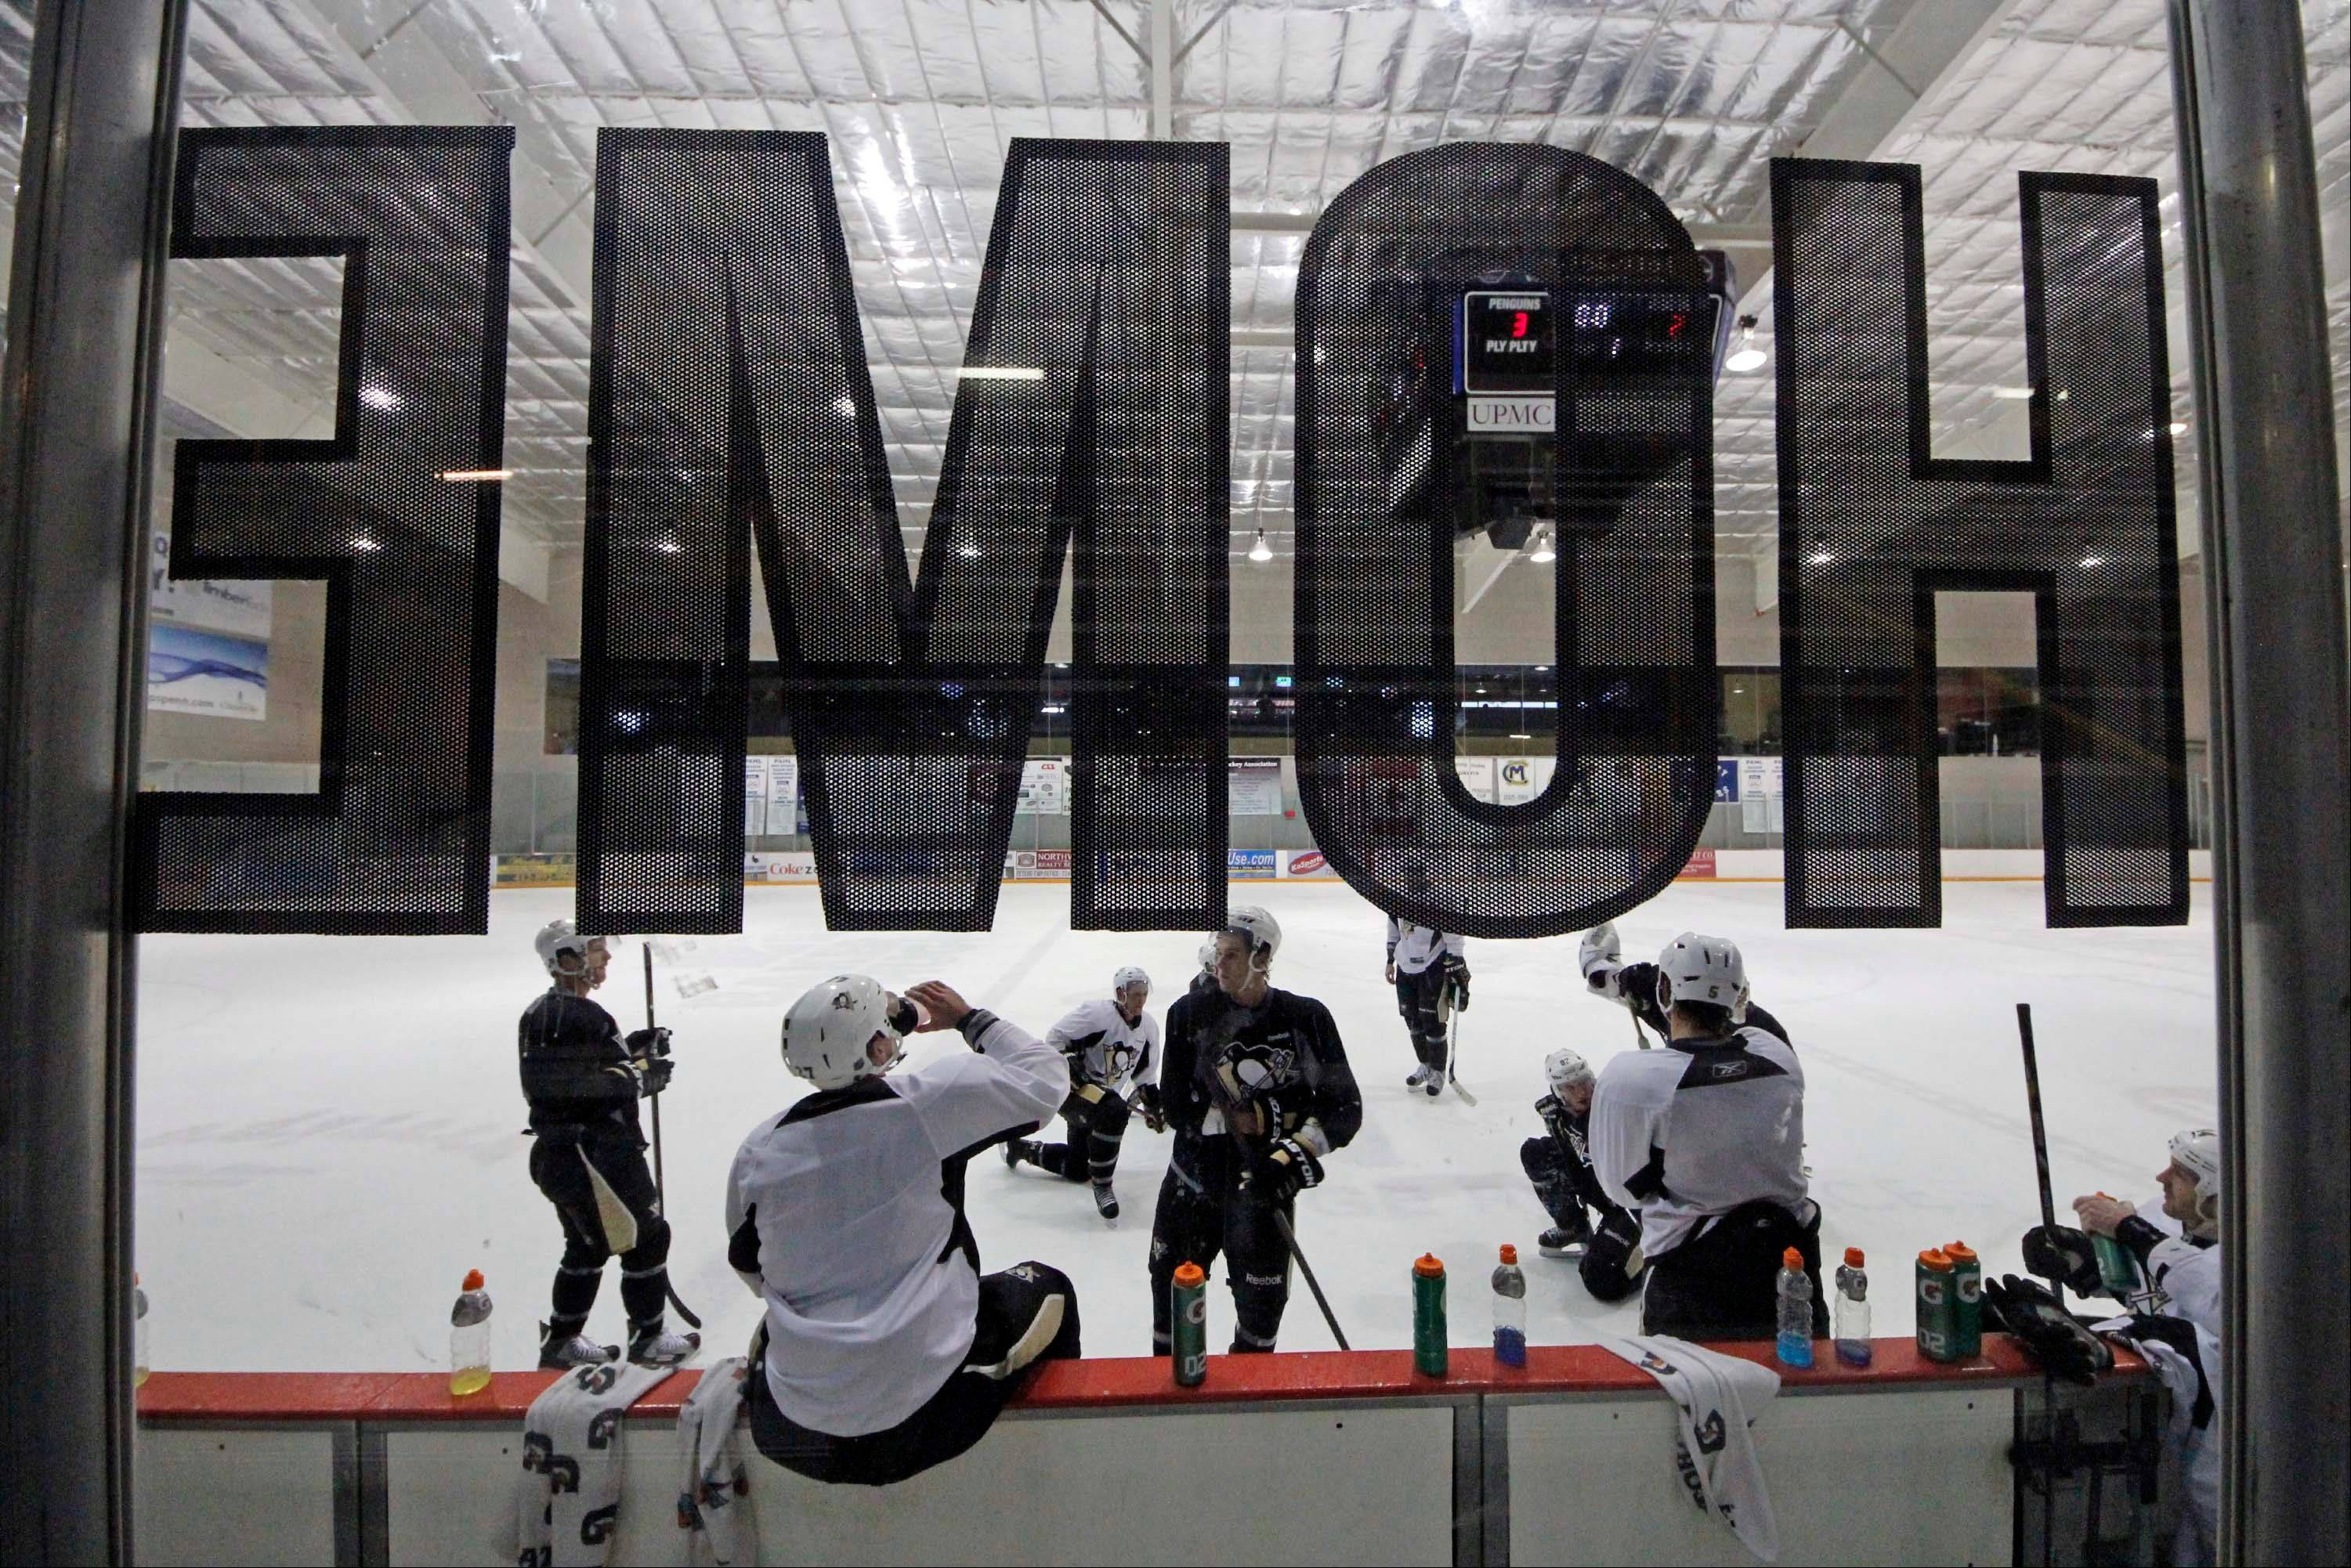 A dozen Pittsburgh Penguins players, including captain Sidney Crosby, participate in an informal workout a day after the end of the NHL labor lockout in Pittsburgh, Monday, Jan. 7, 2013.